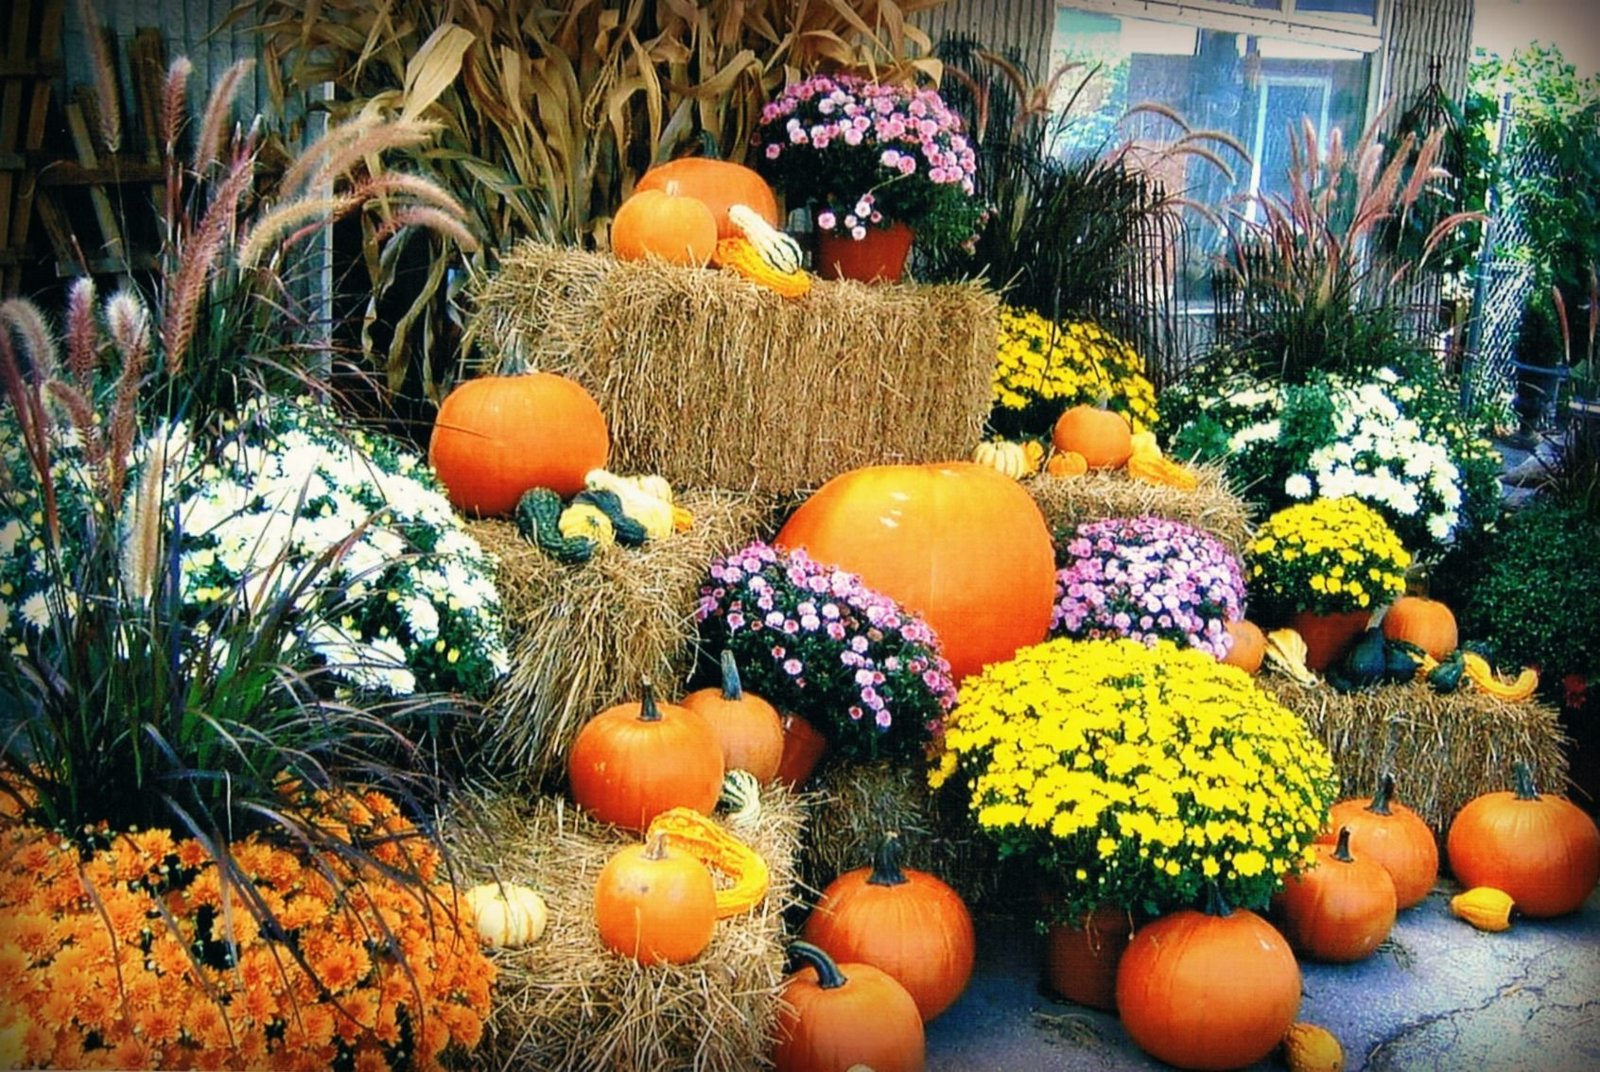 pumpkins-and-straw-min.jpg